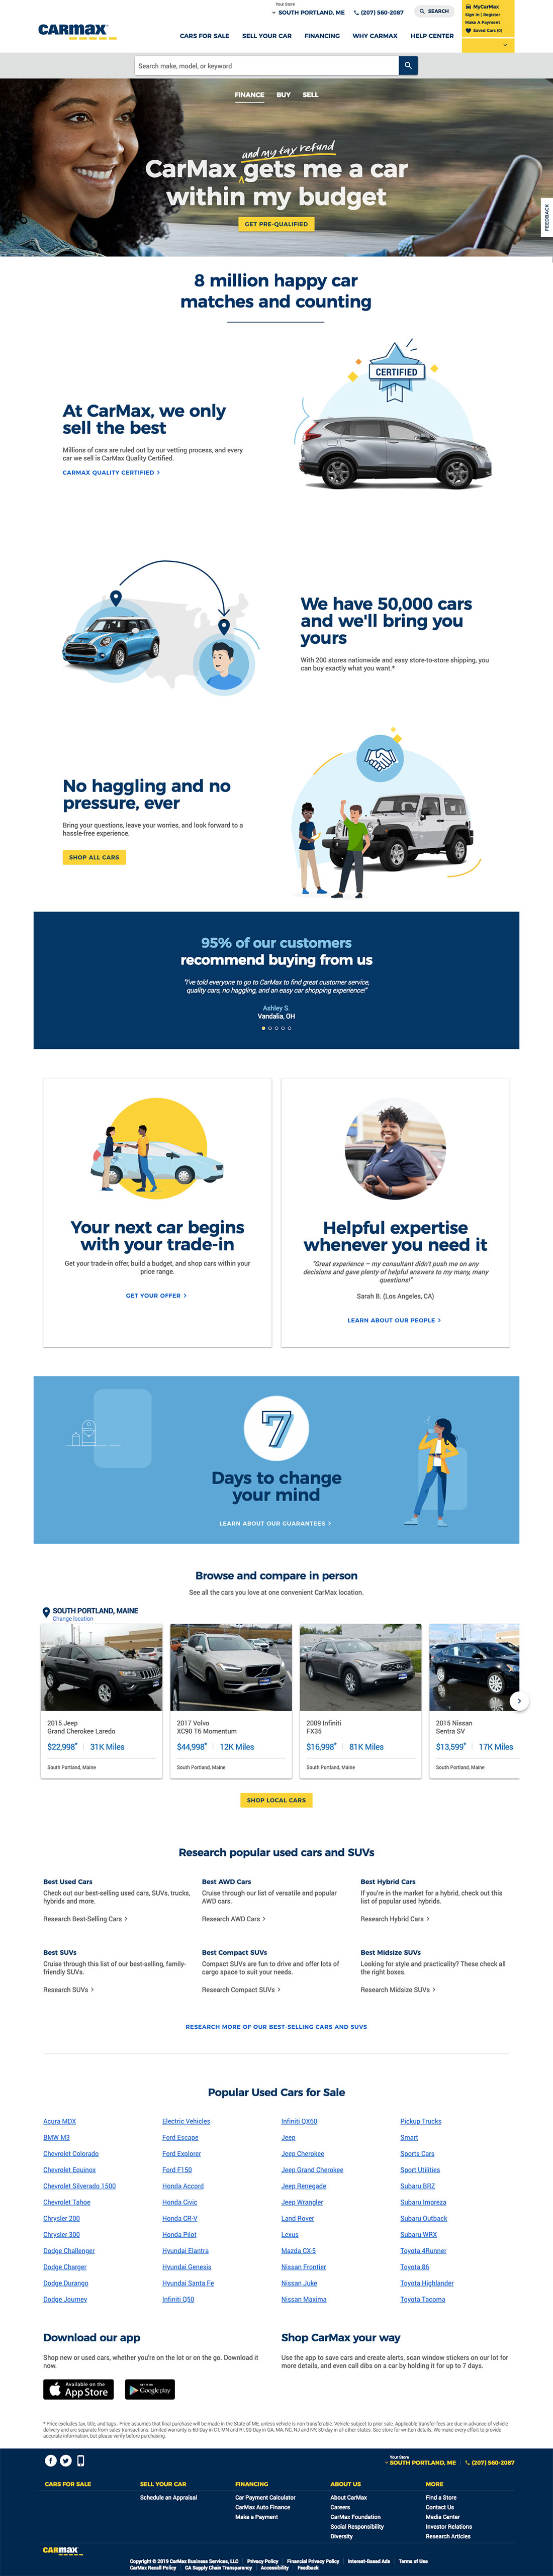 Carmax web design